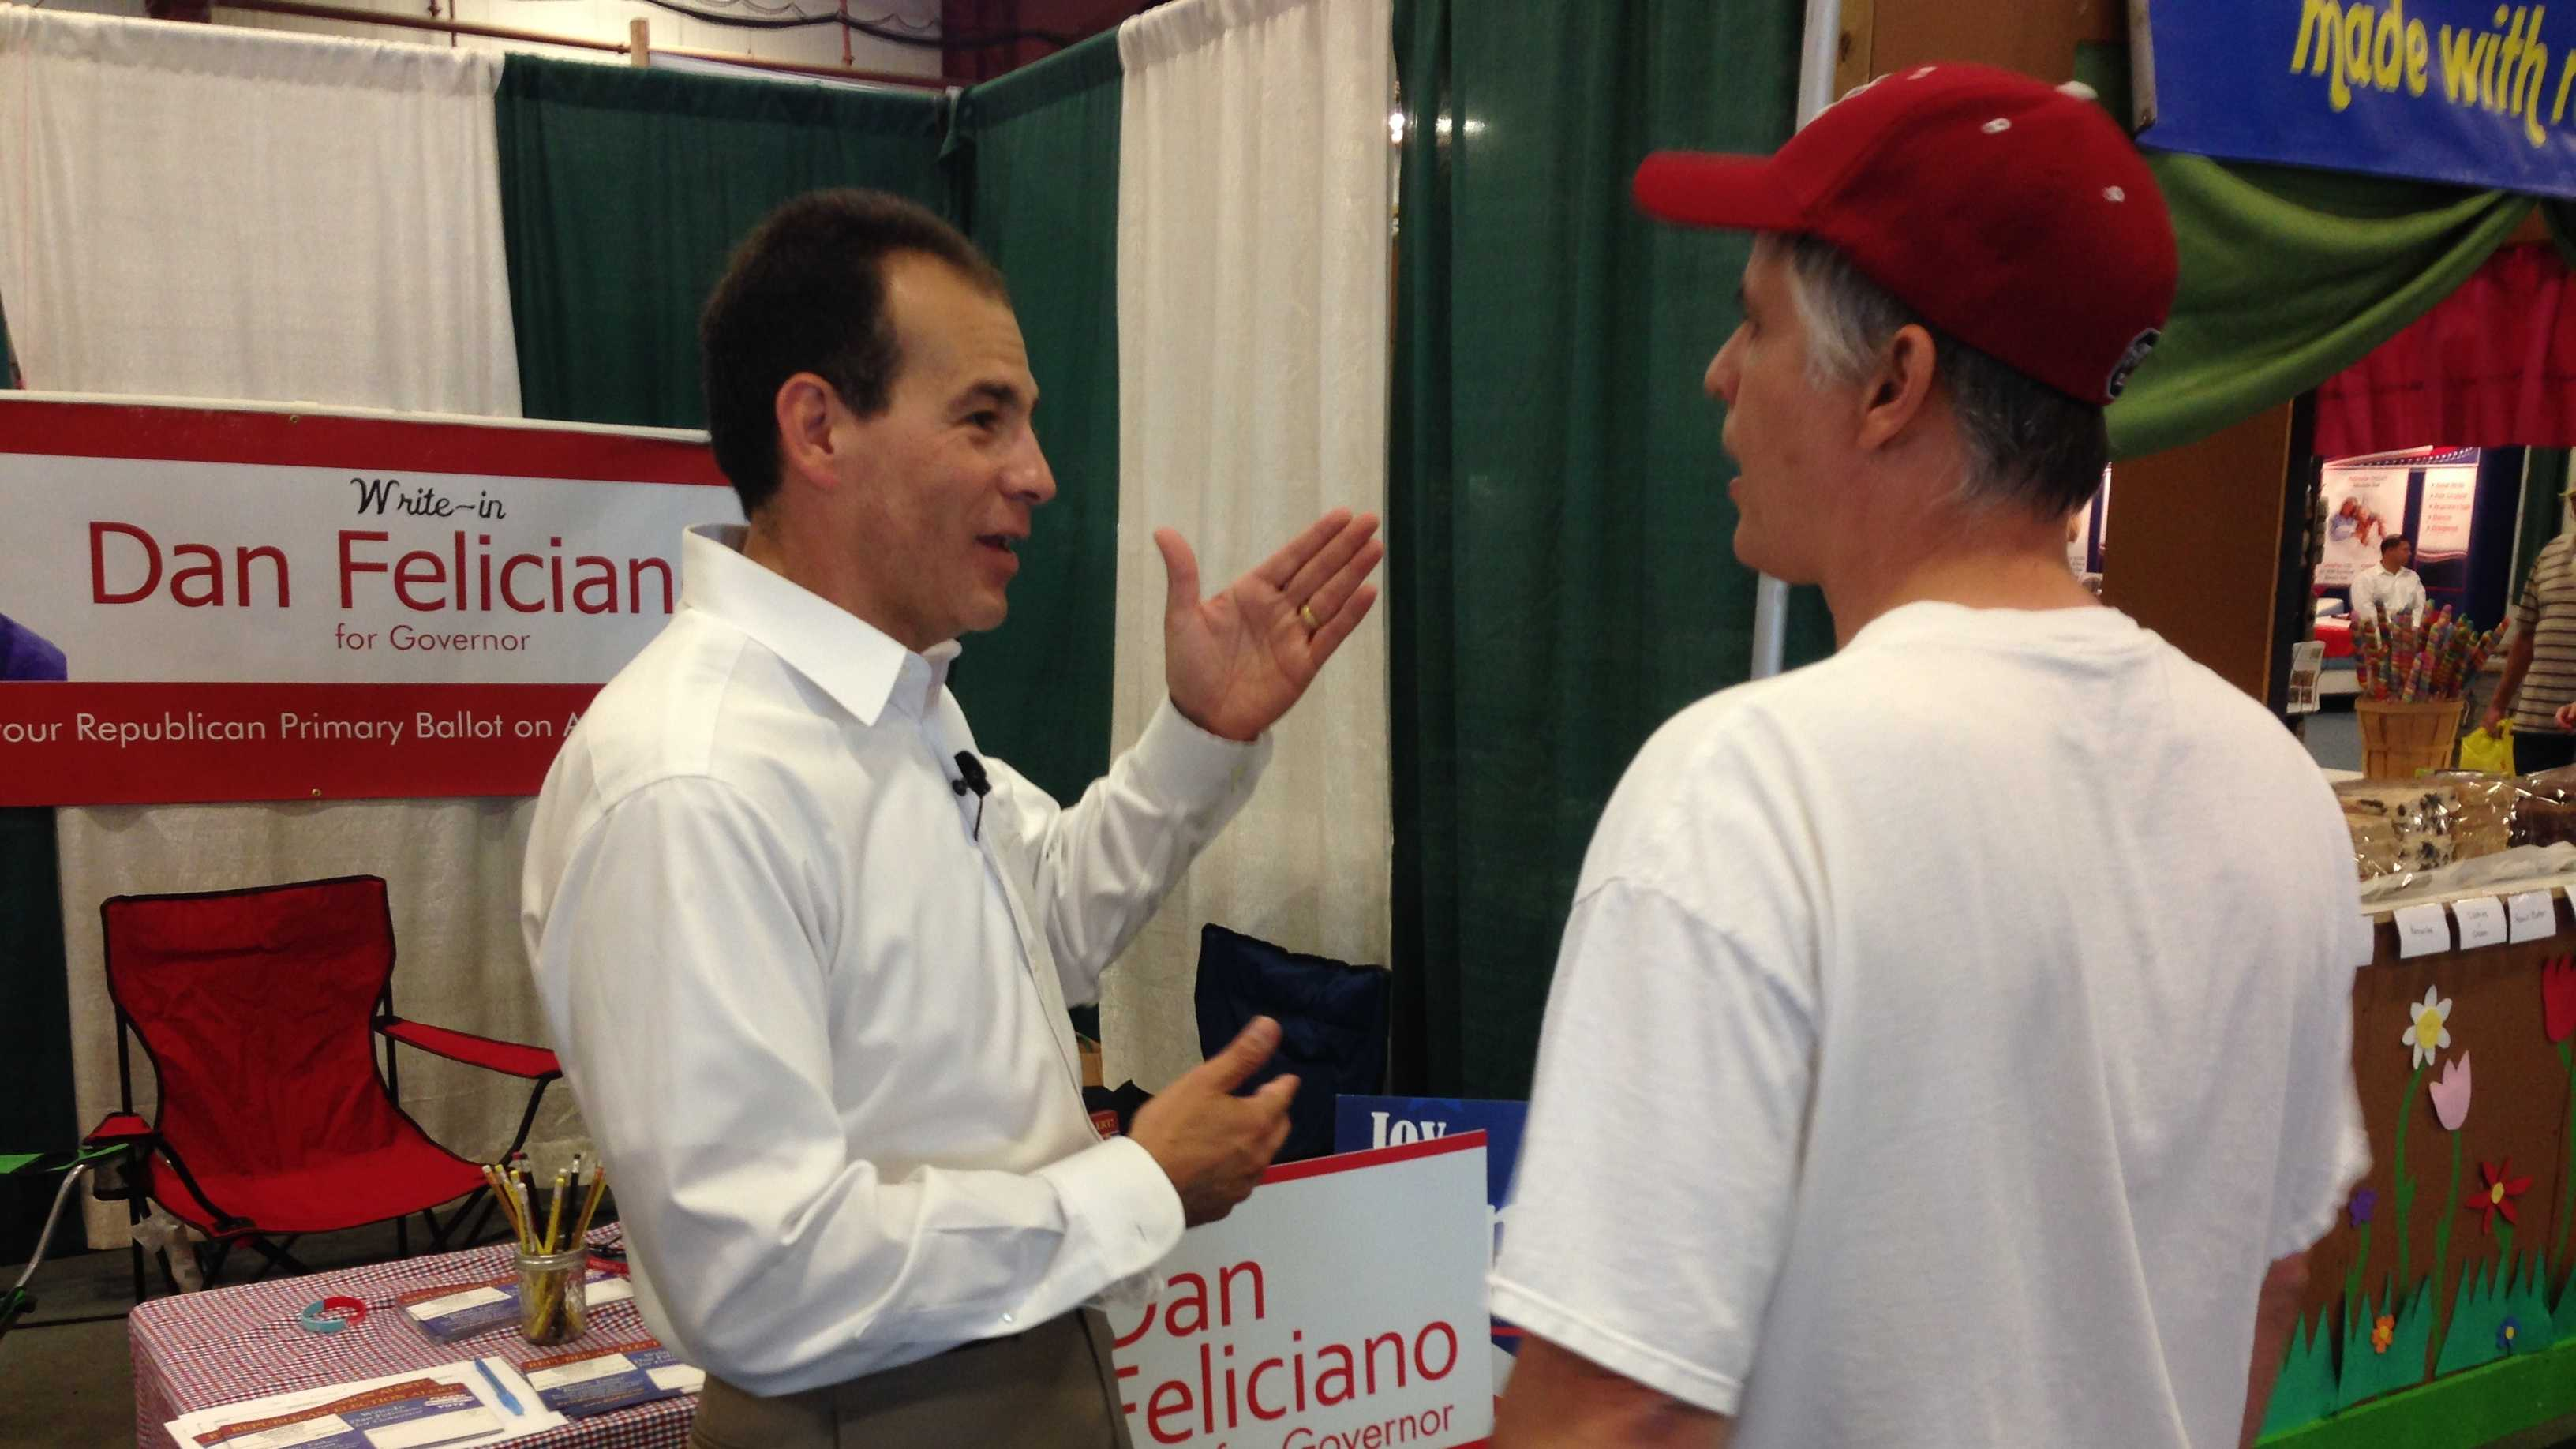 GOP write-in candidate for governor Dan Feliciano talks with an voter Monday at the Champlain Valley Fair.